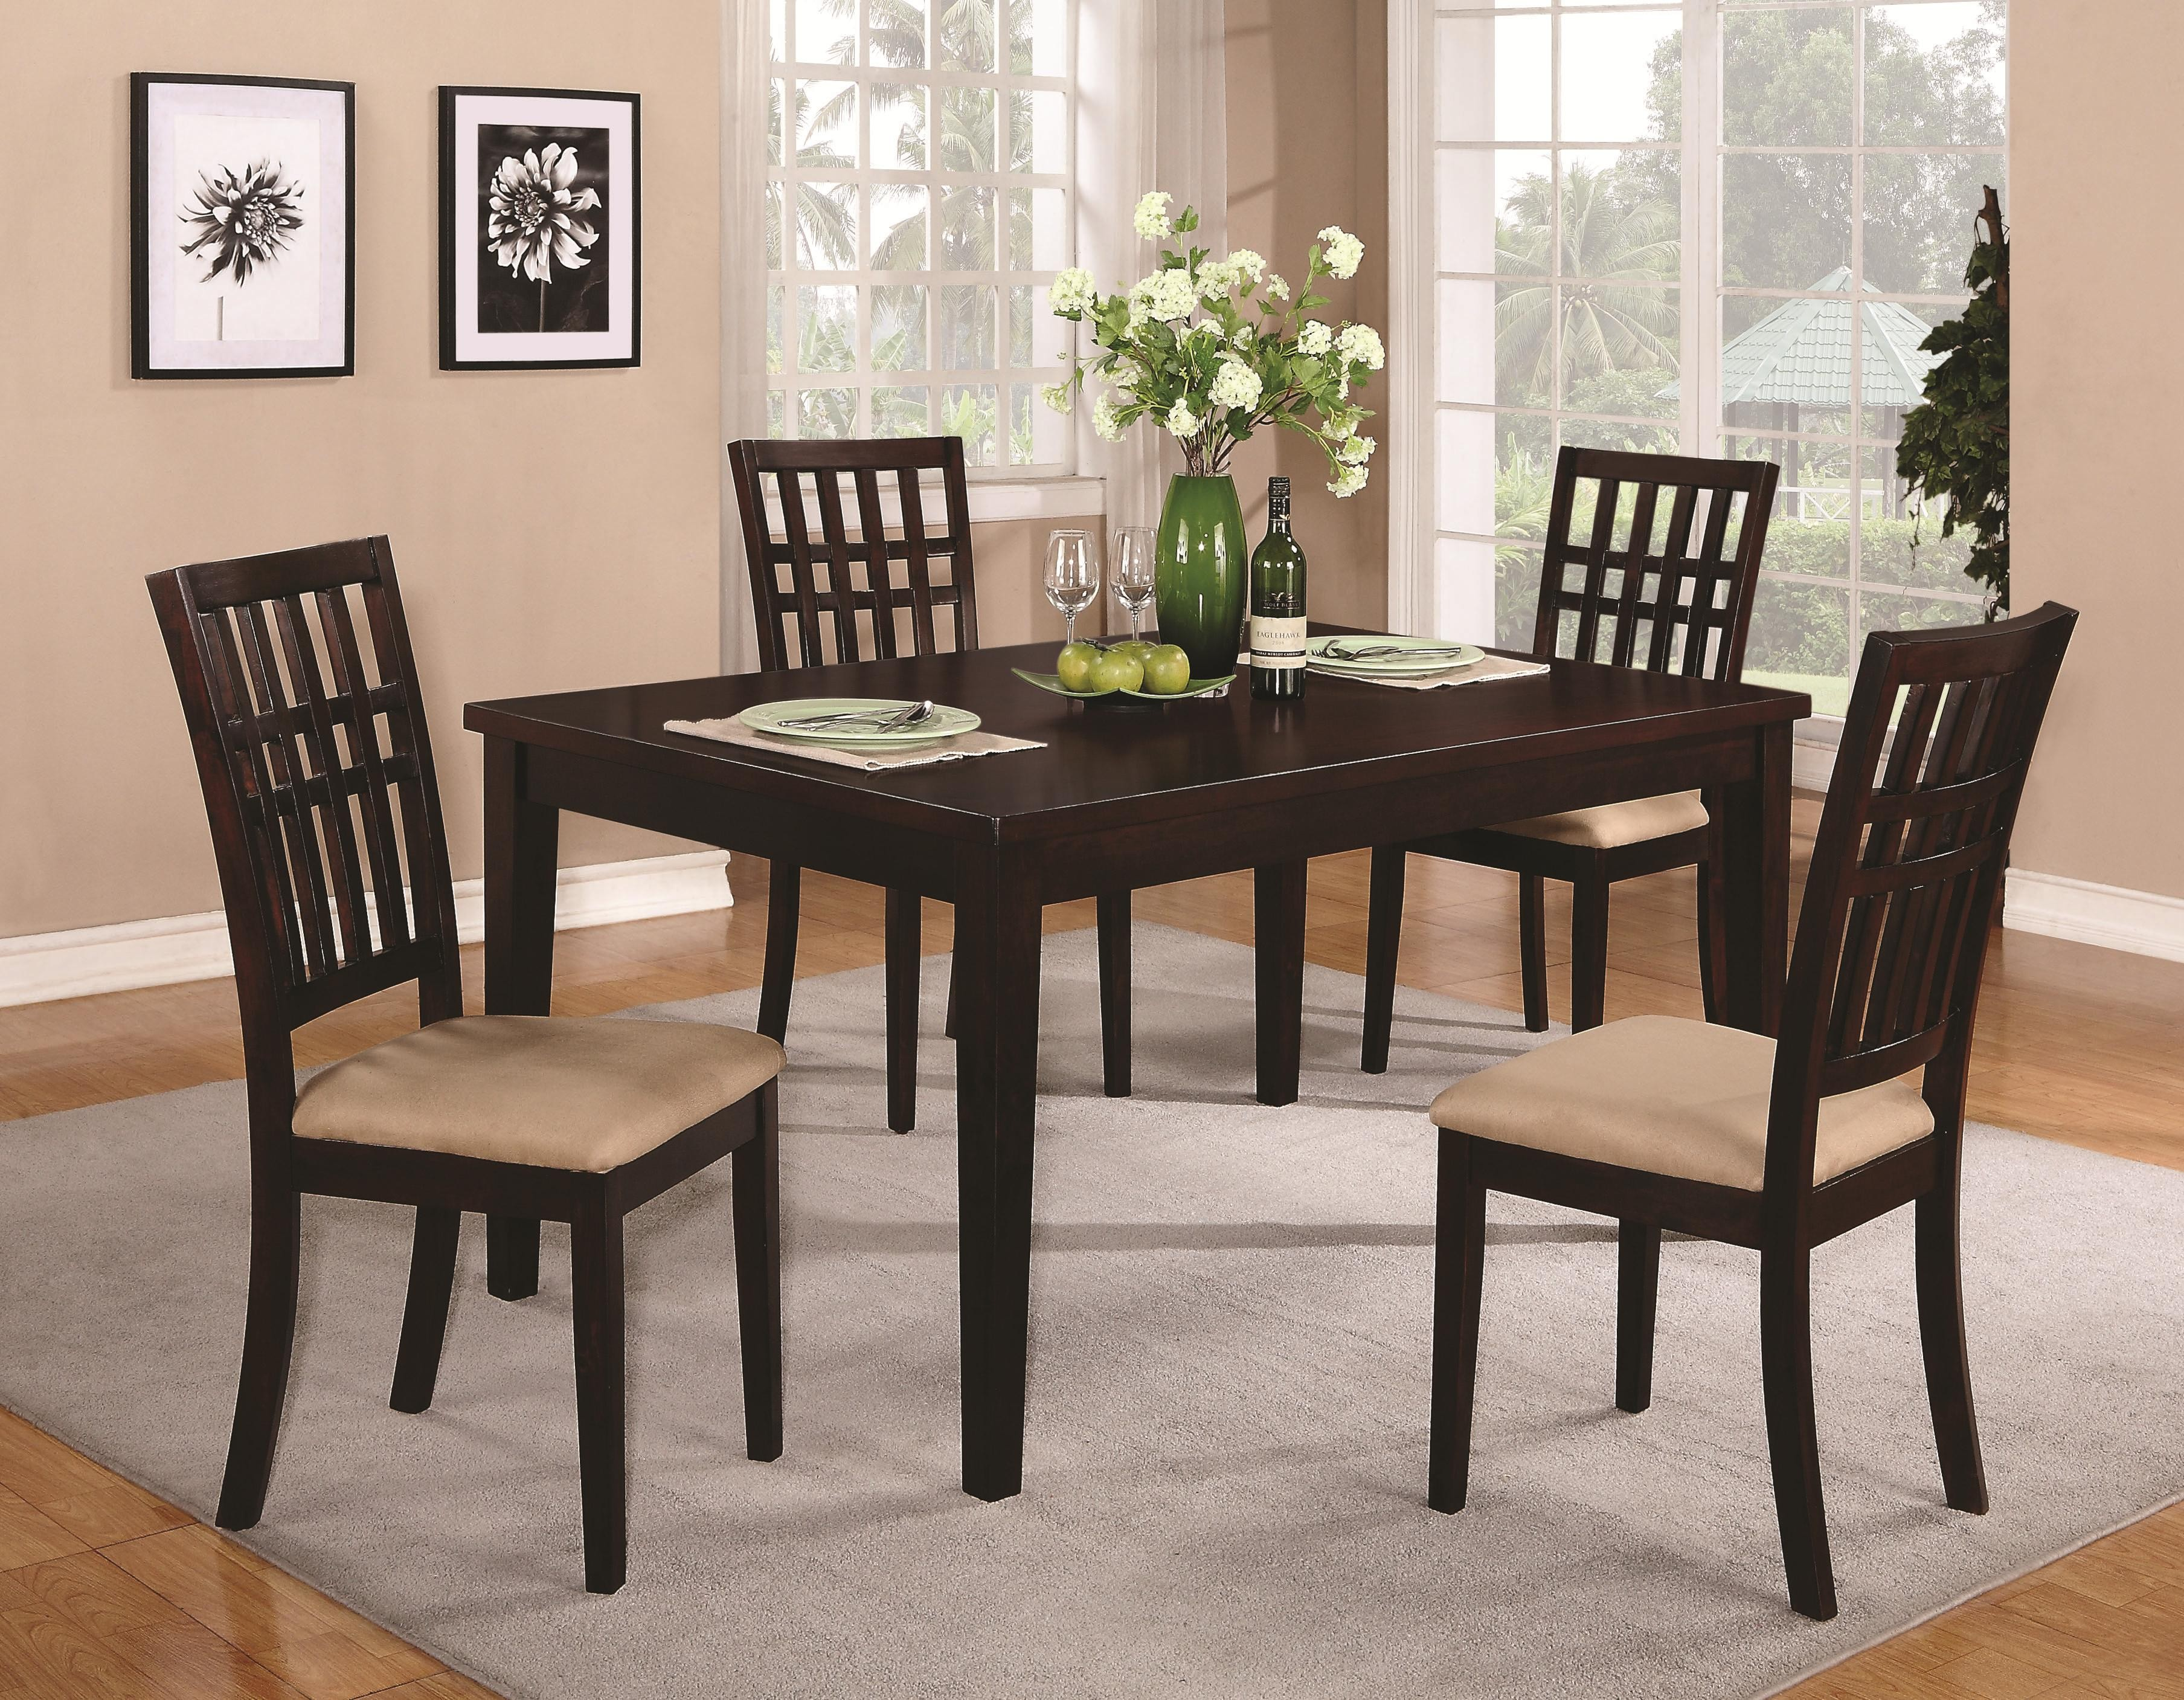 Casual Dining Table CO 103341 Contemporary Dining